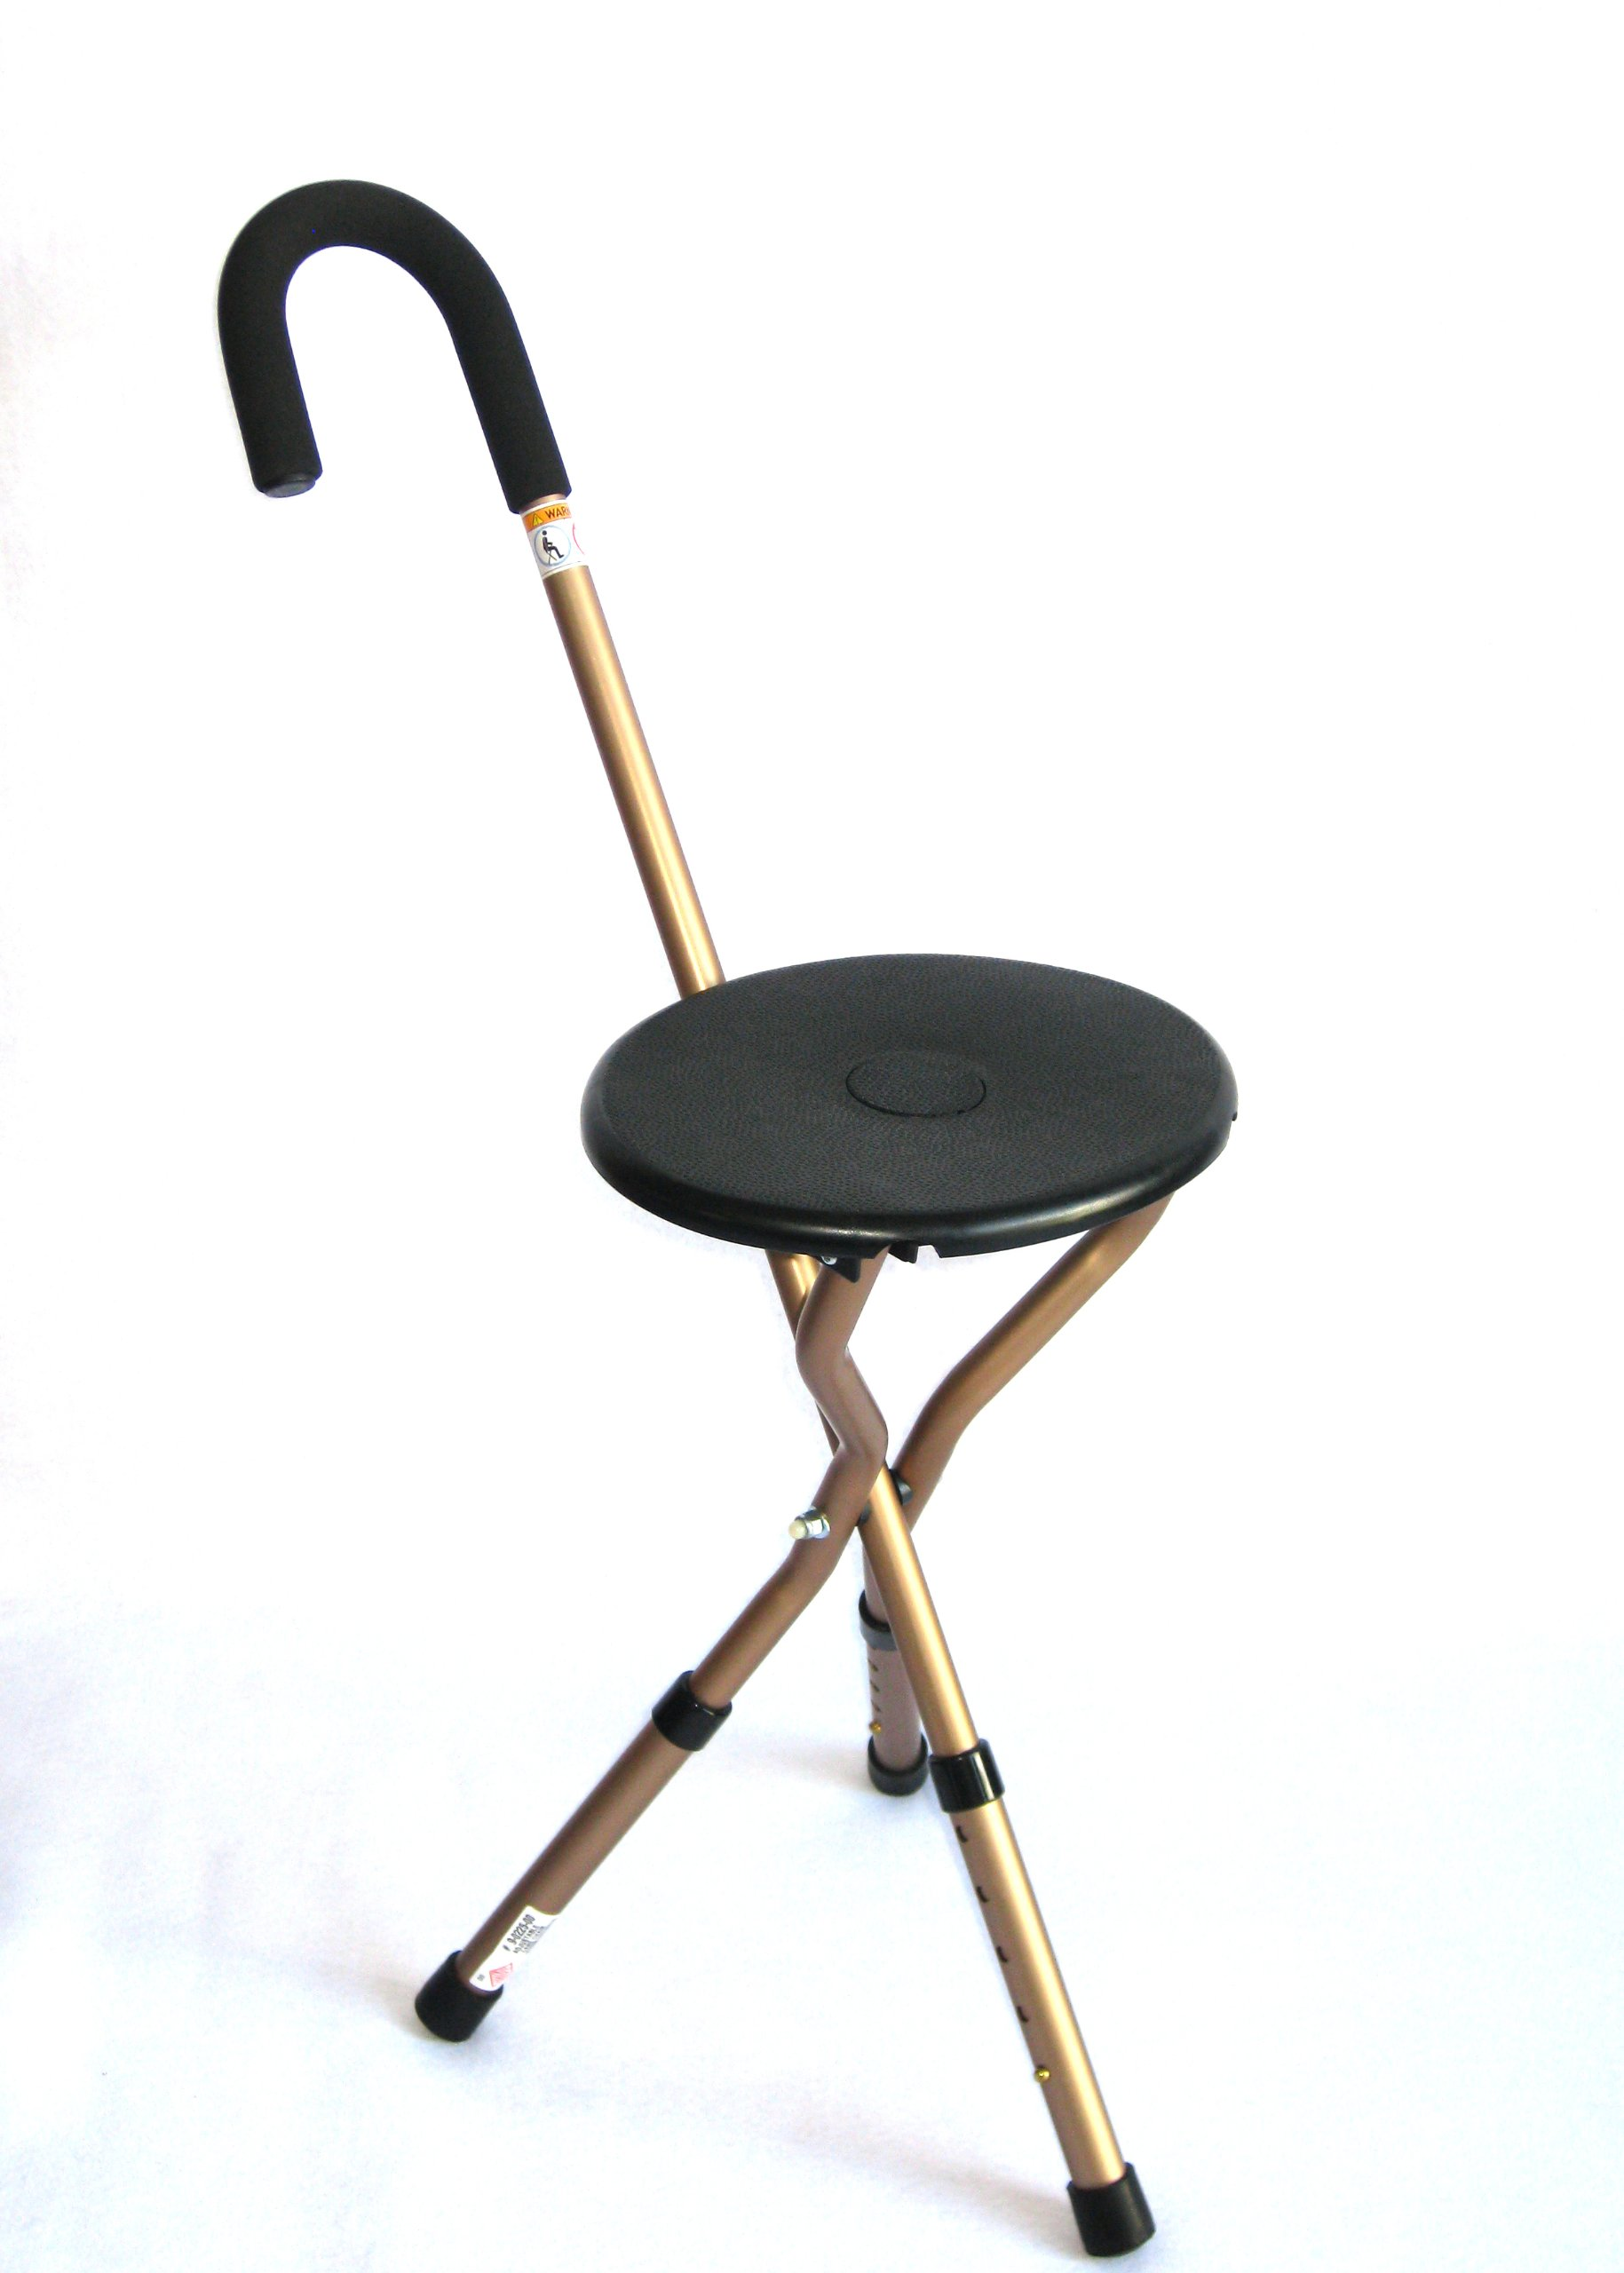 Harvy Seat Cane with Adjustable Legs - 225lbs Weight Max.